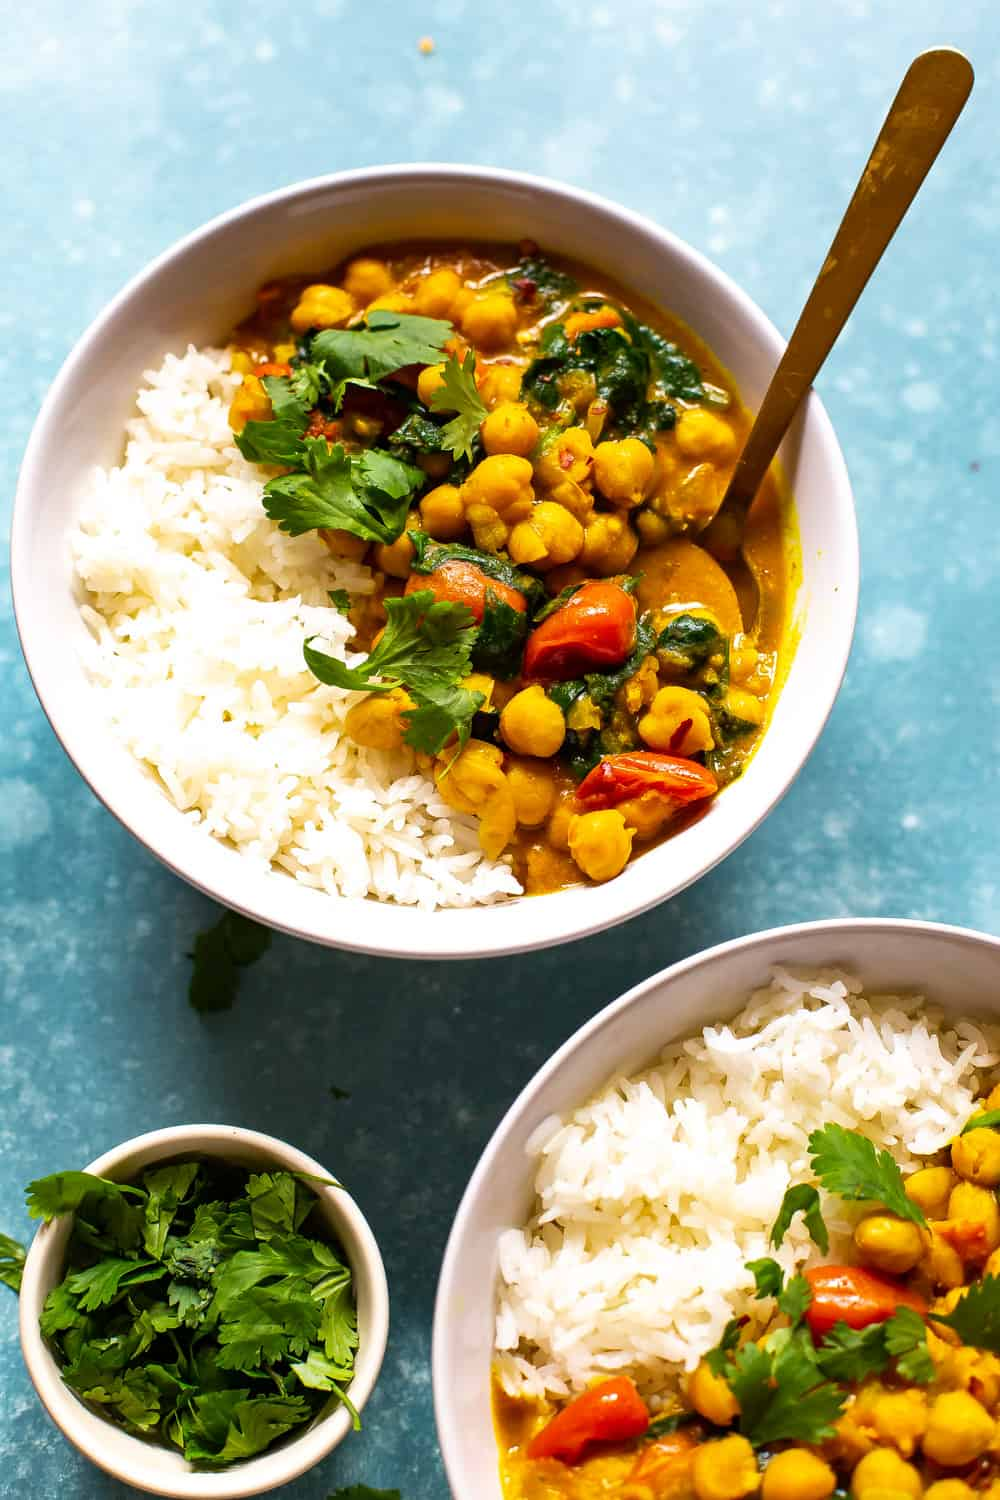 chickpea curry, cherry tomatoes, and leafy greens in a bowl with white rice